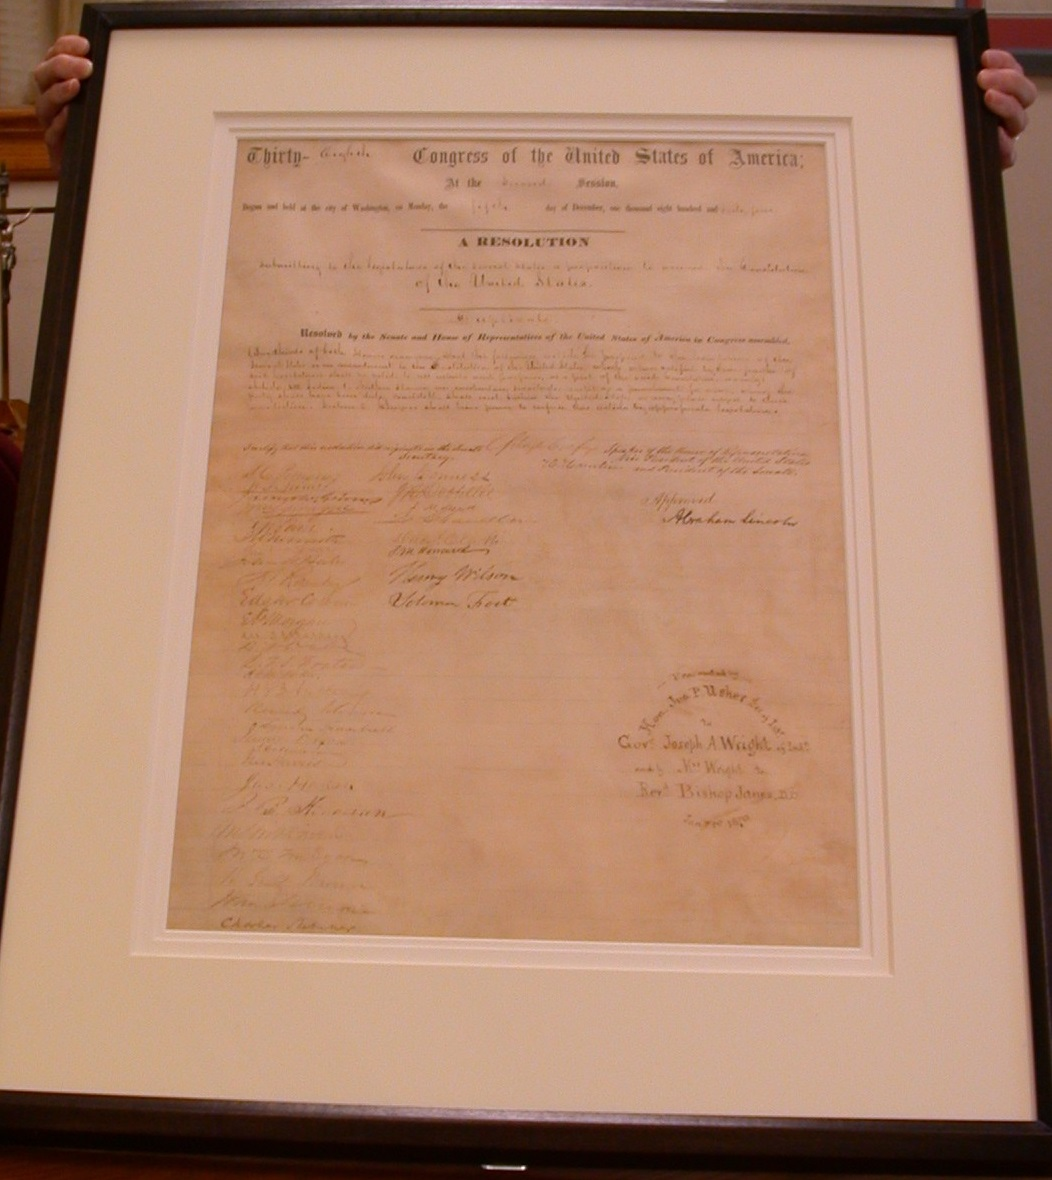 The University of Saint Mary's copy of The Thirteenth Amendment to the United States Constitution